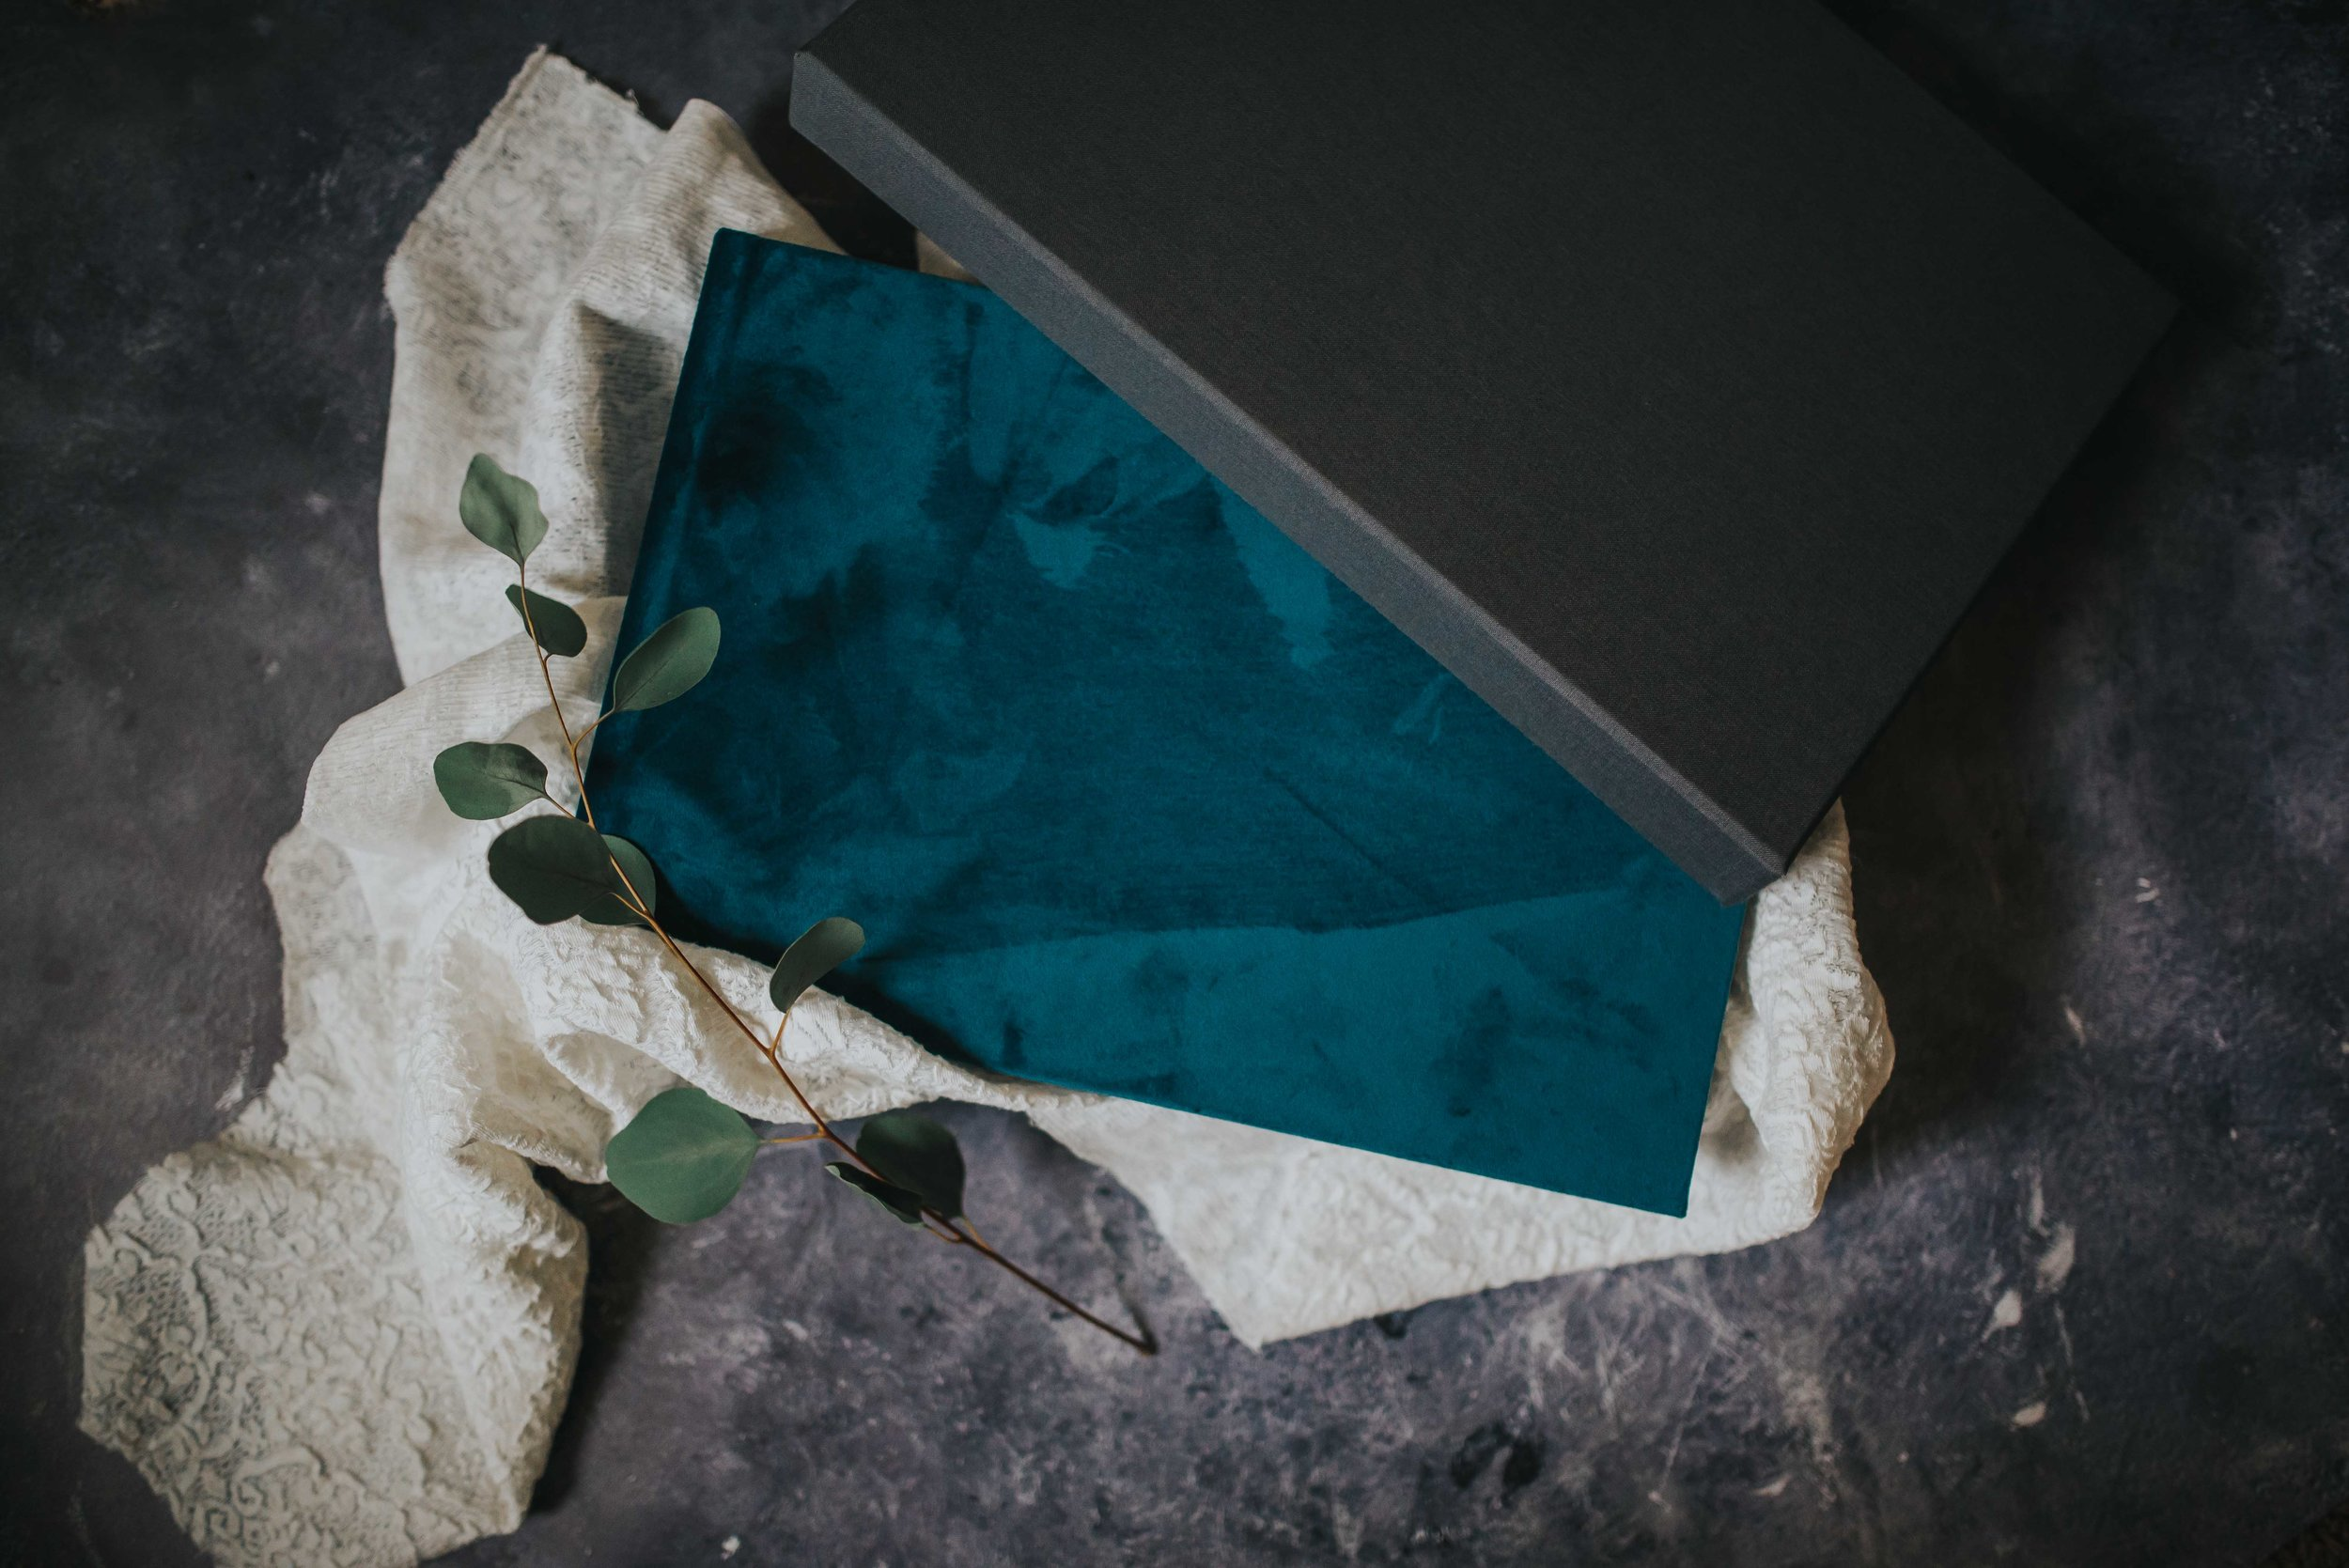 Signature Albums - Linen, Velvet or Leather Cover Albums with Debossing Featuring Thin Paper